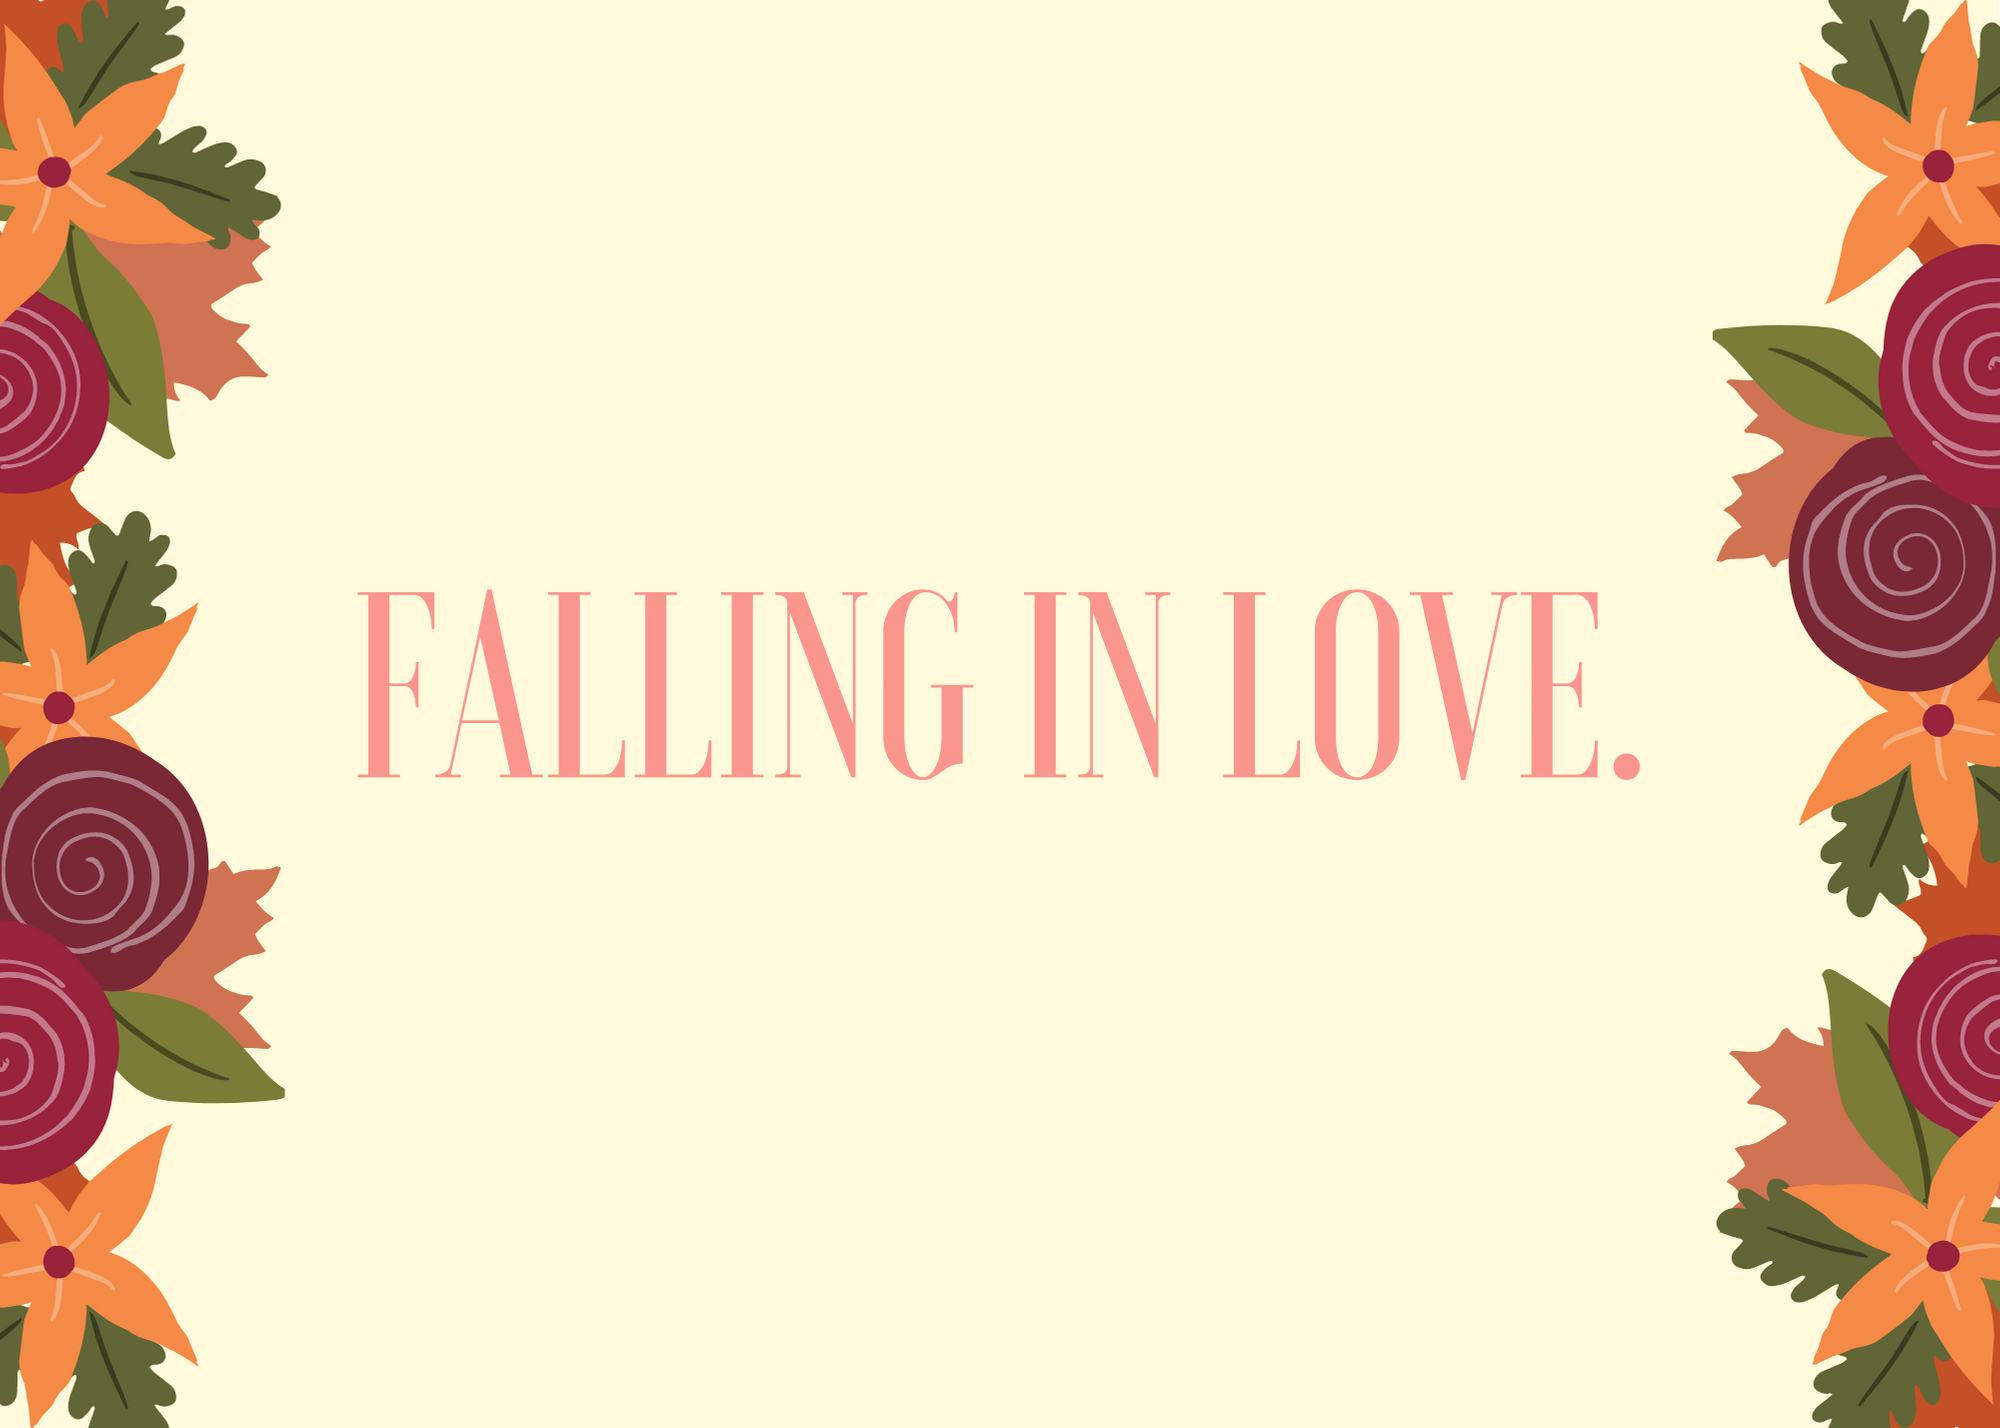 Funny Fall Instagram Caption About Falling In Love